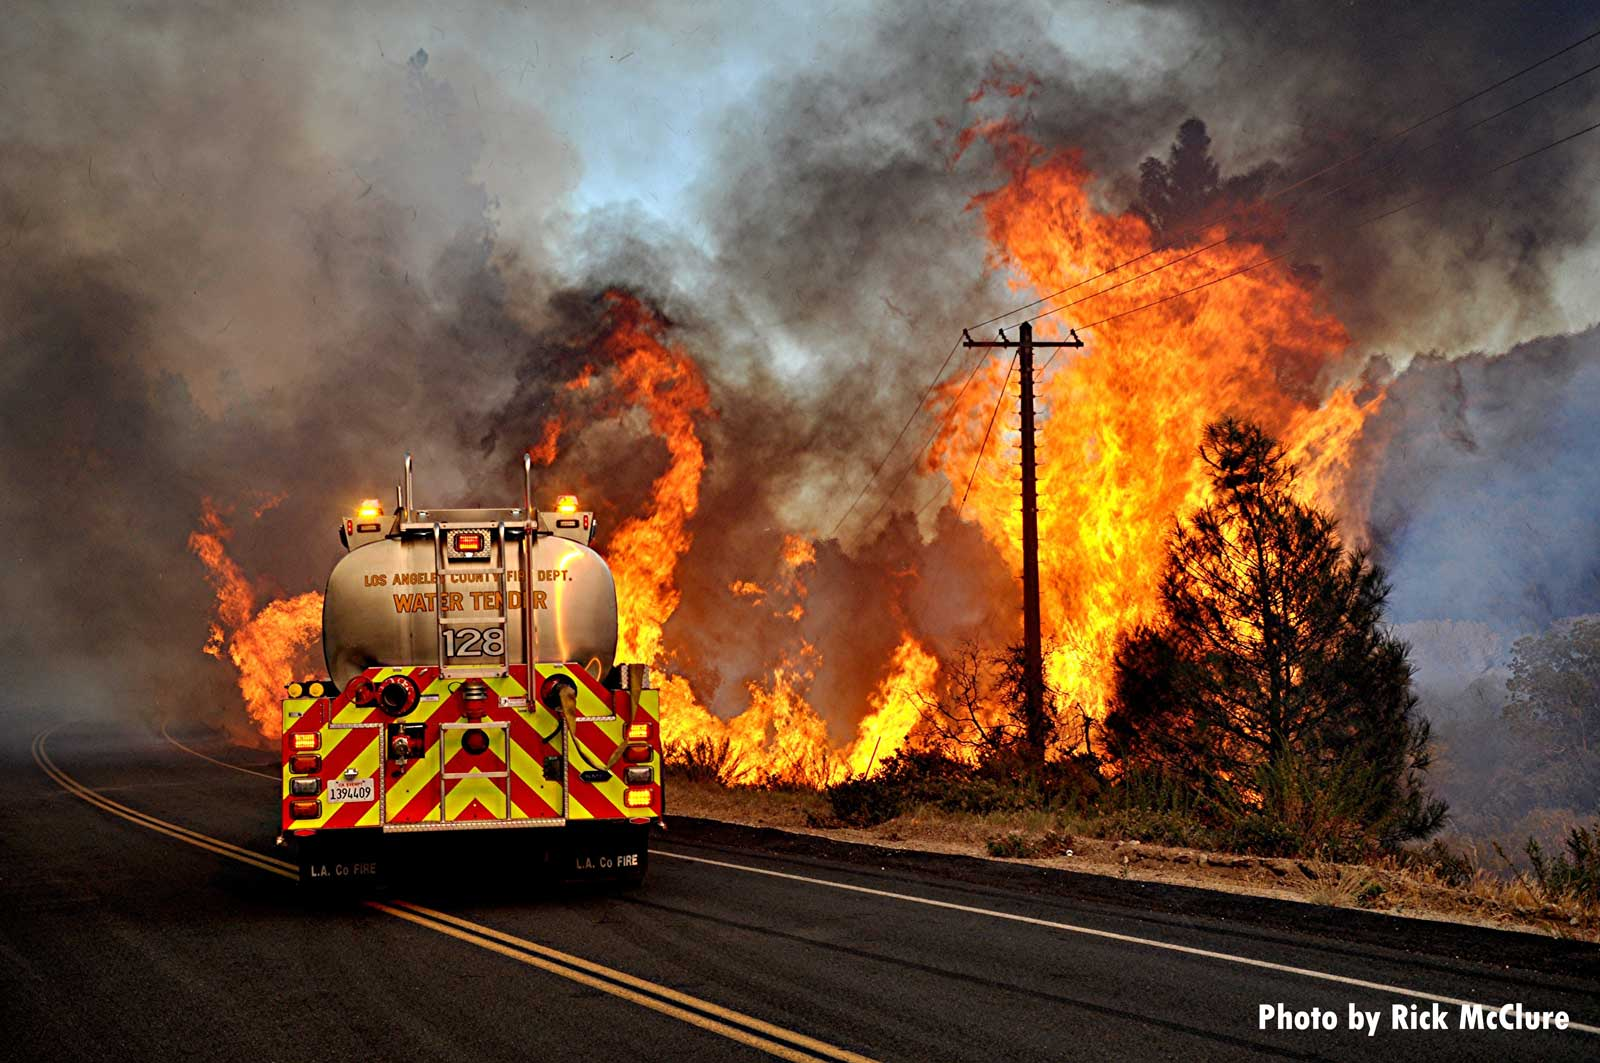 Fire apparatus fights wildland fire from road